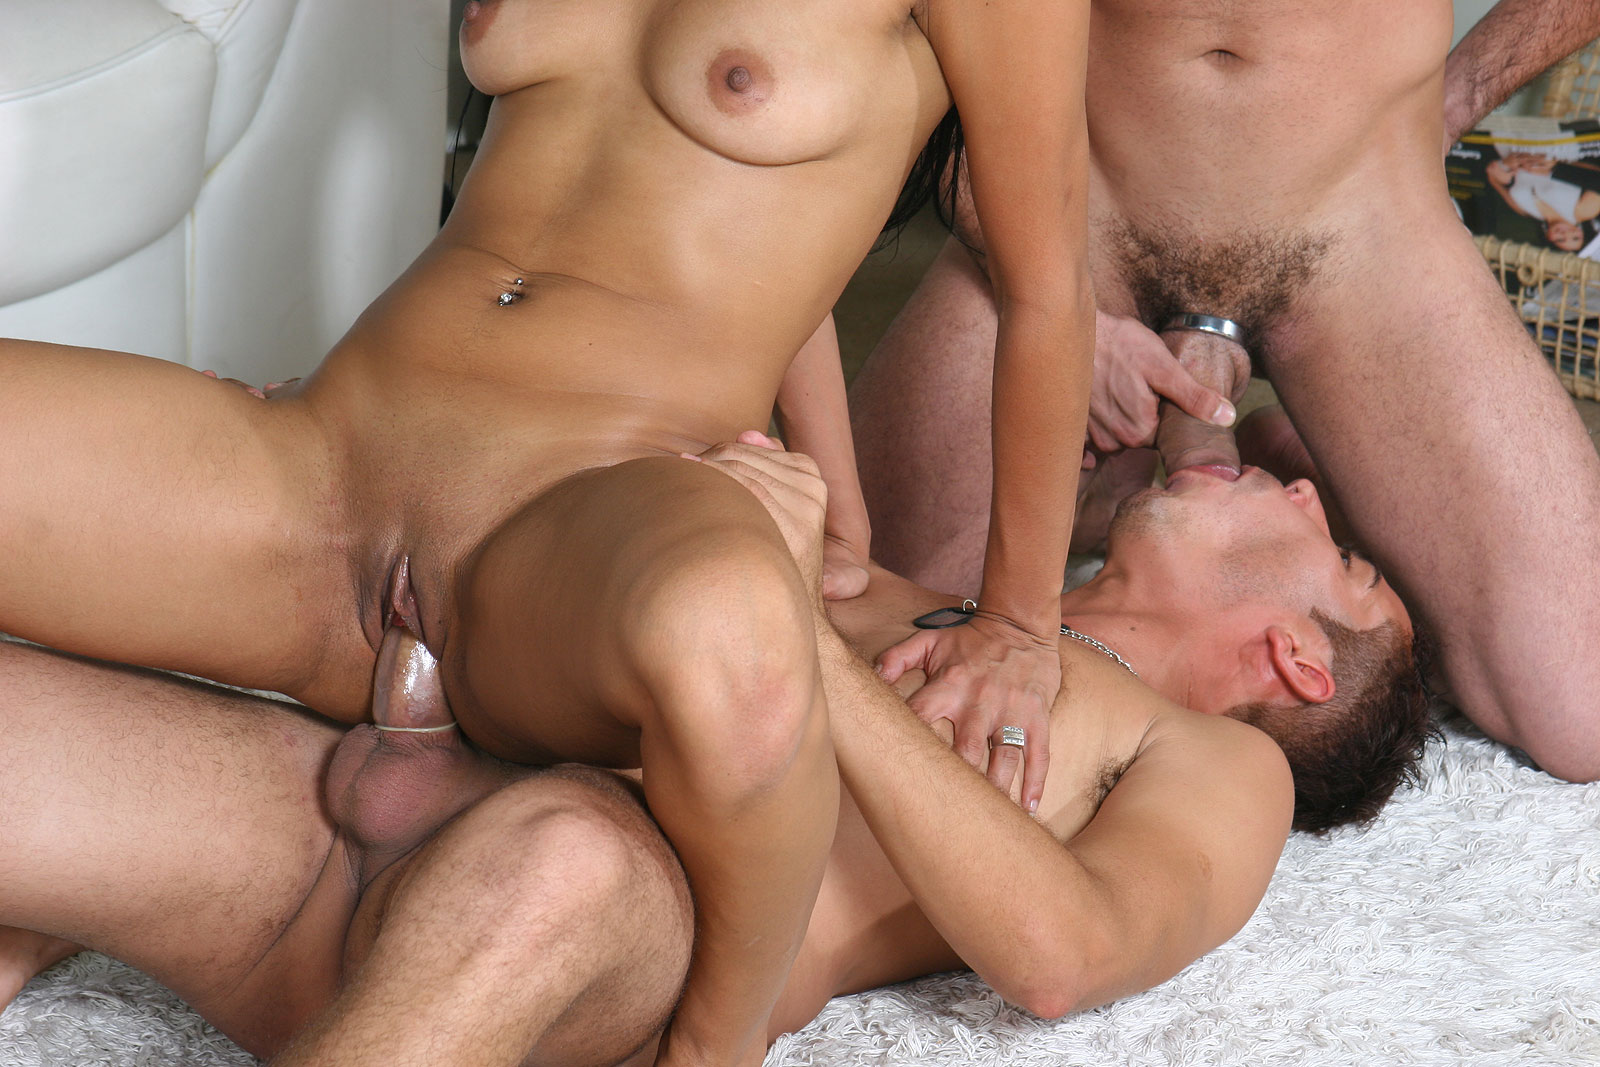 Free sex movies drunk-2178